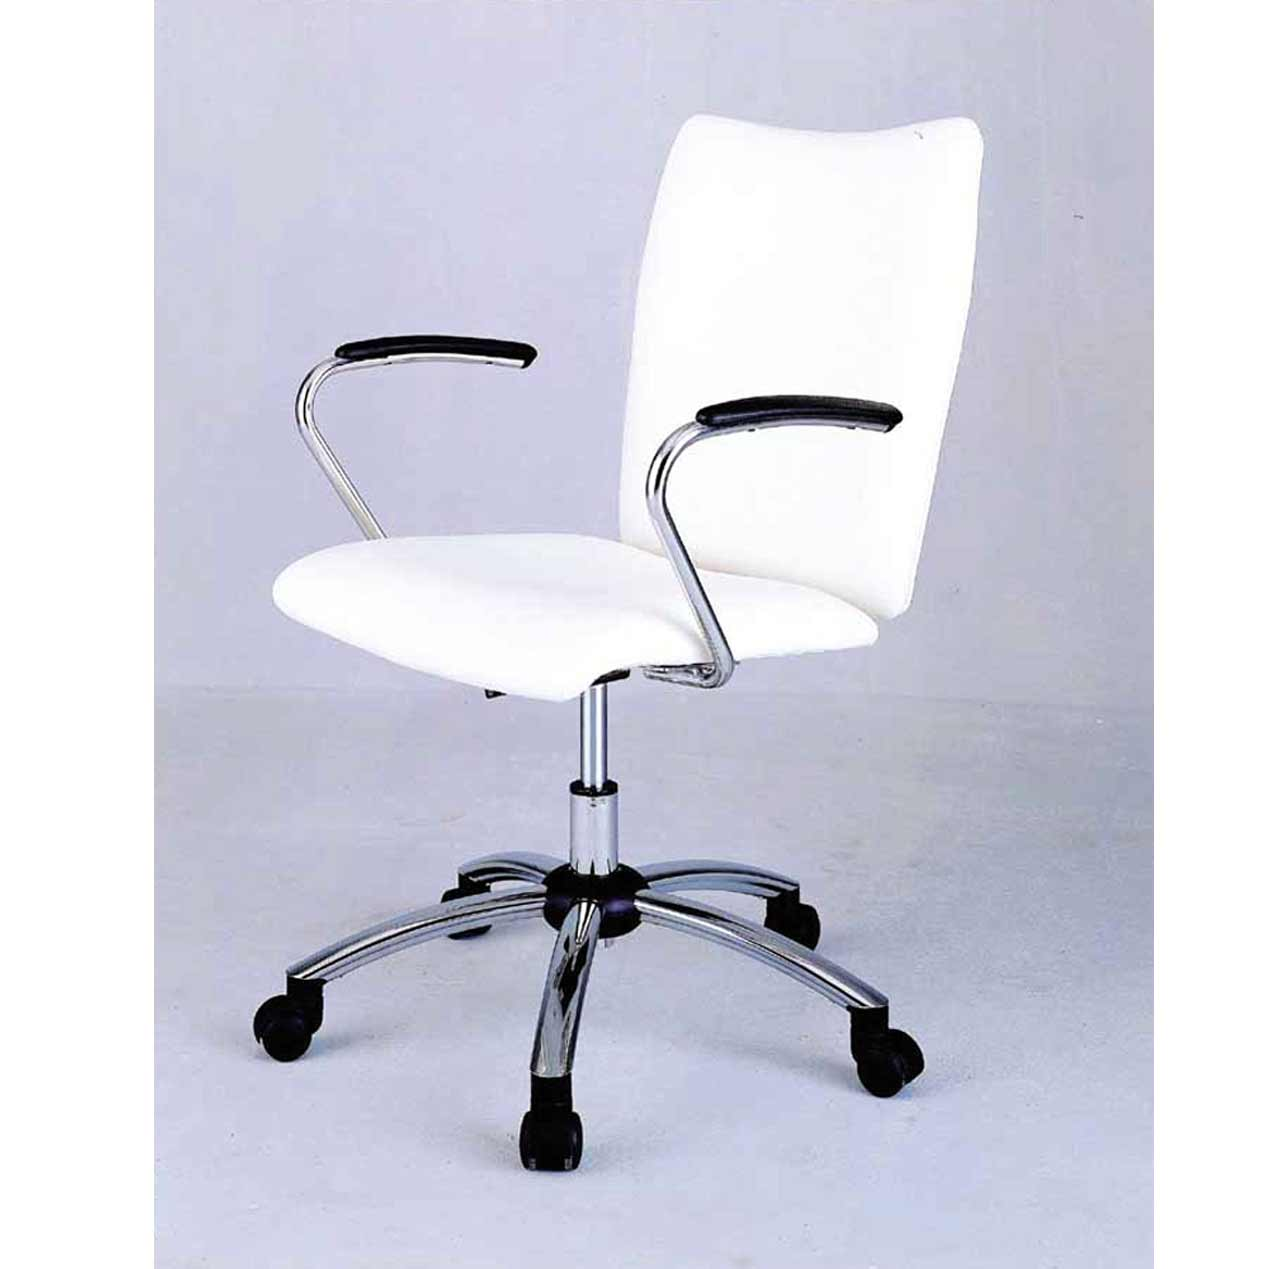 Desk Chairs Desk Chairs Decorative Decoration News